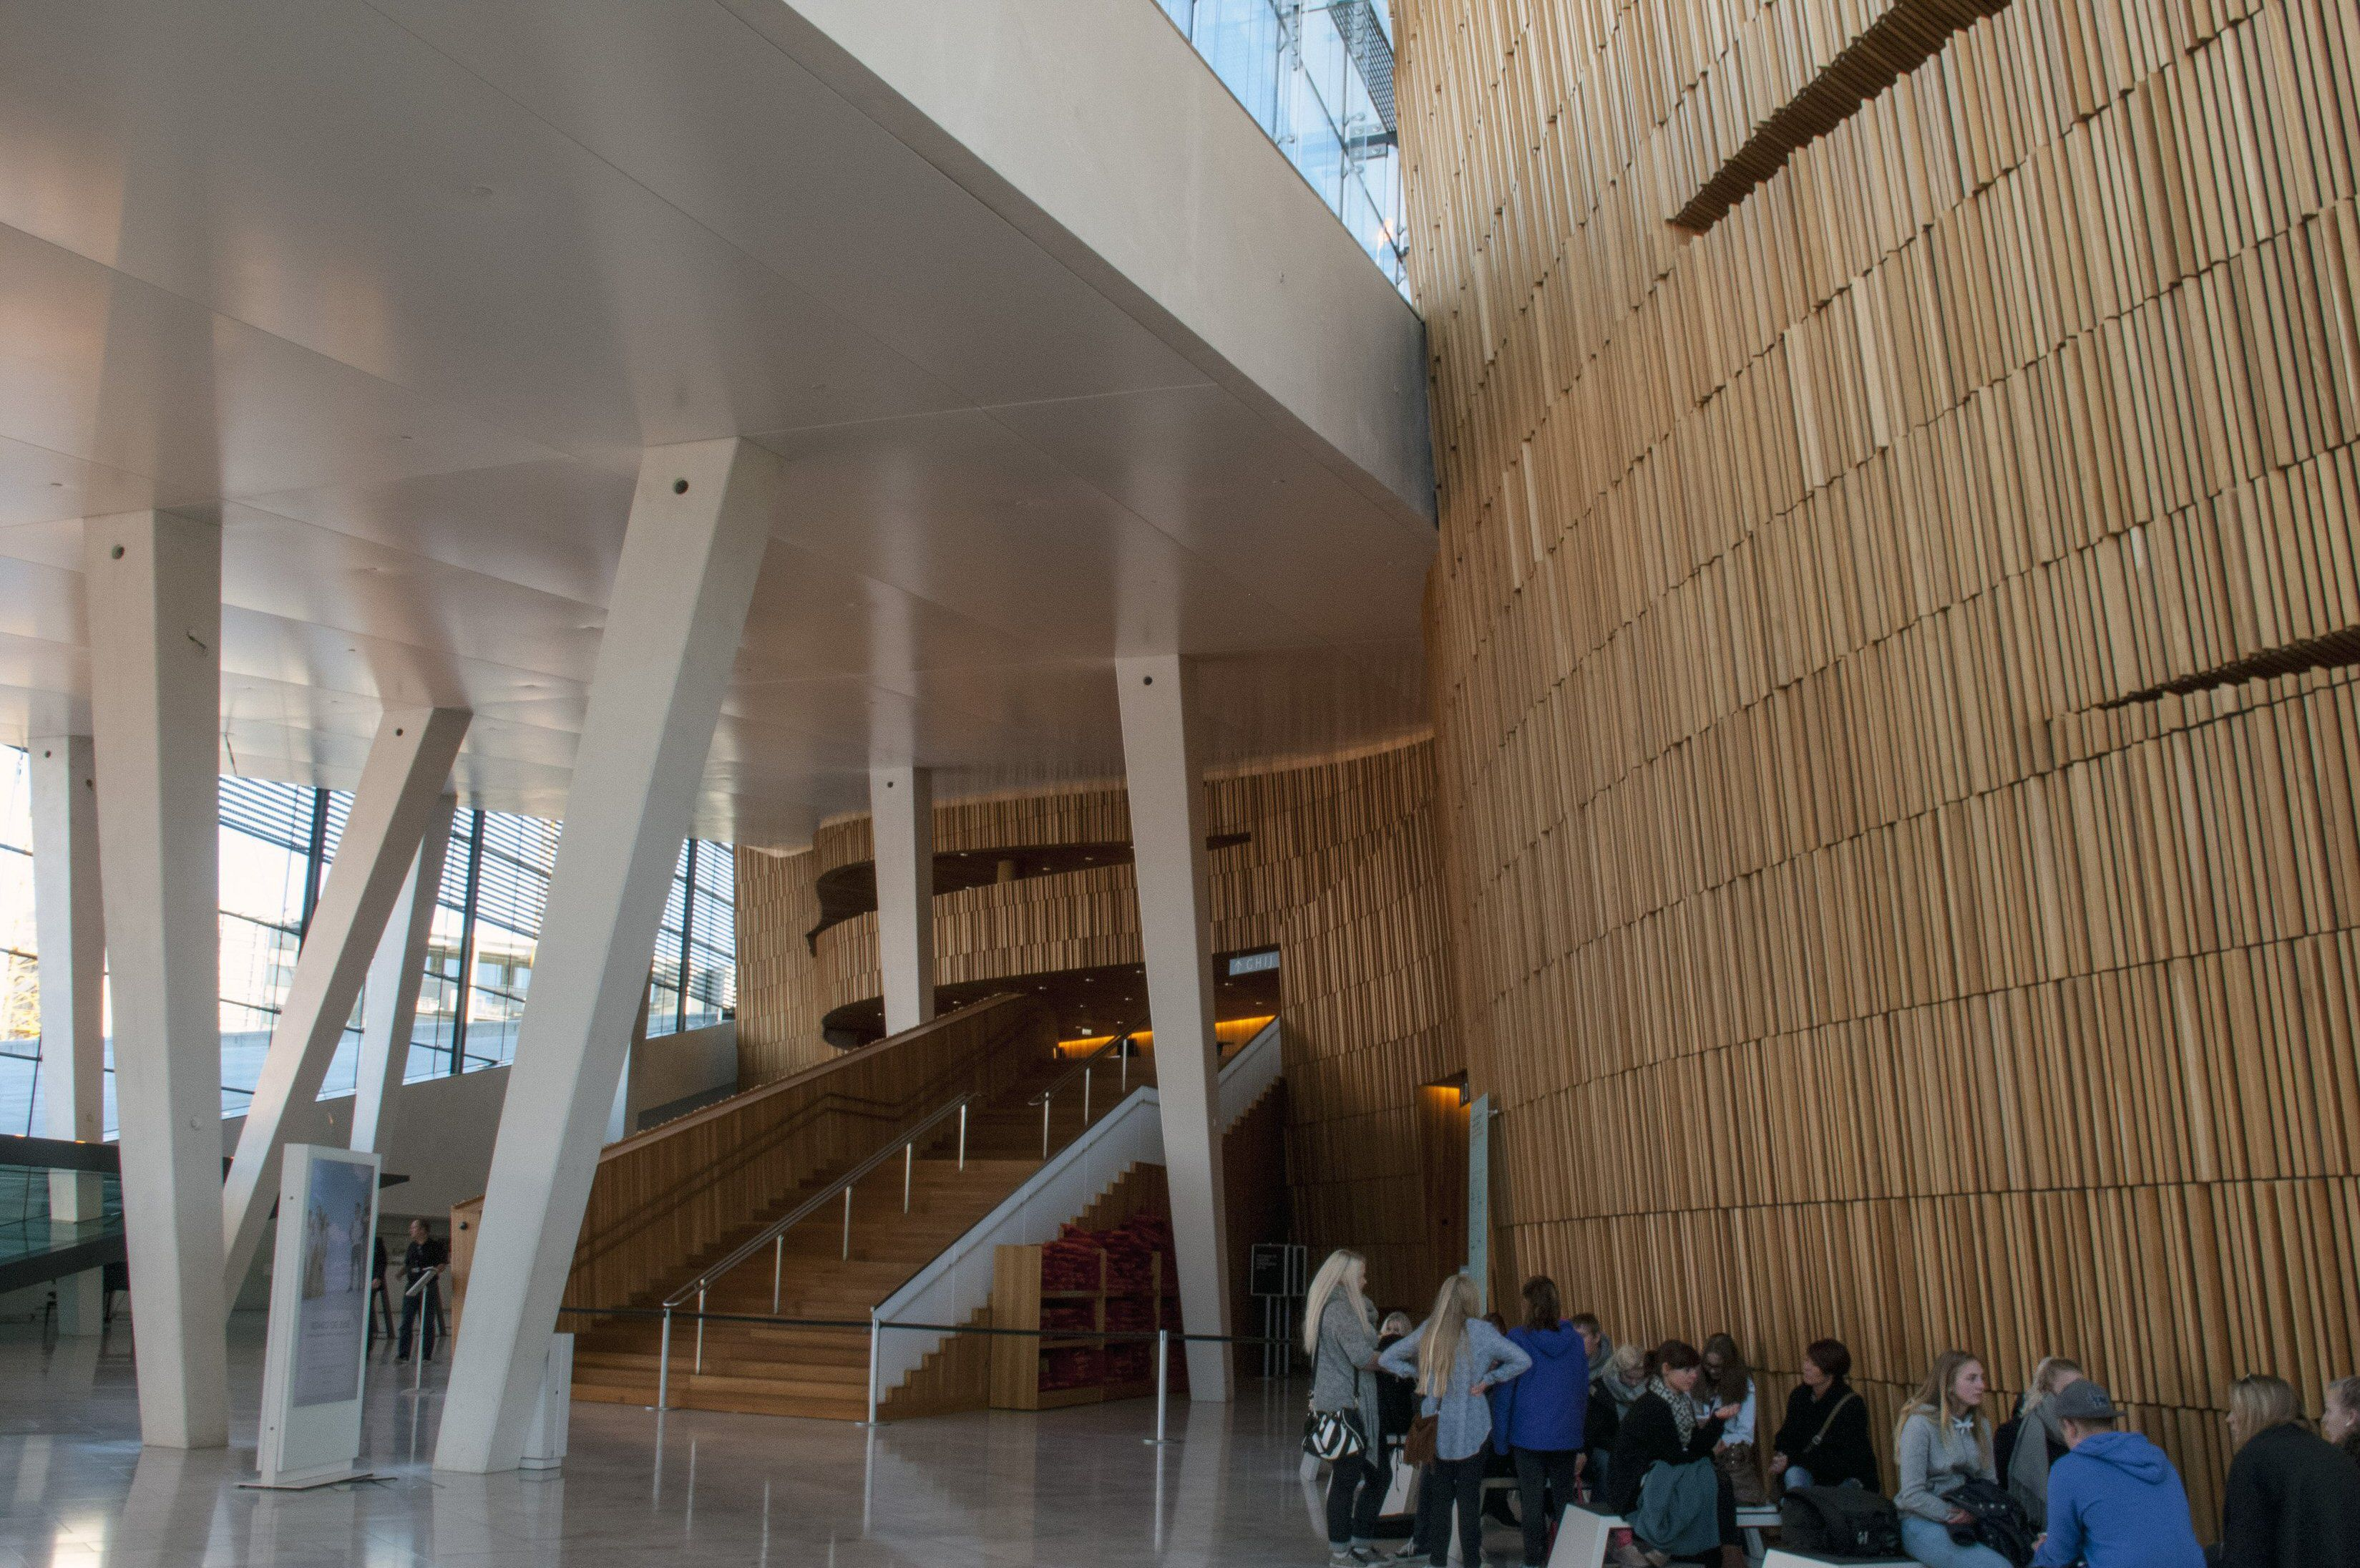 Entering Into the Main Stage of the Oslo Opera House